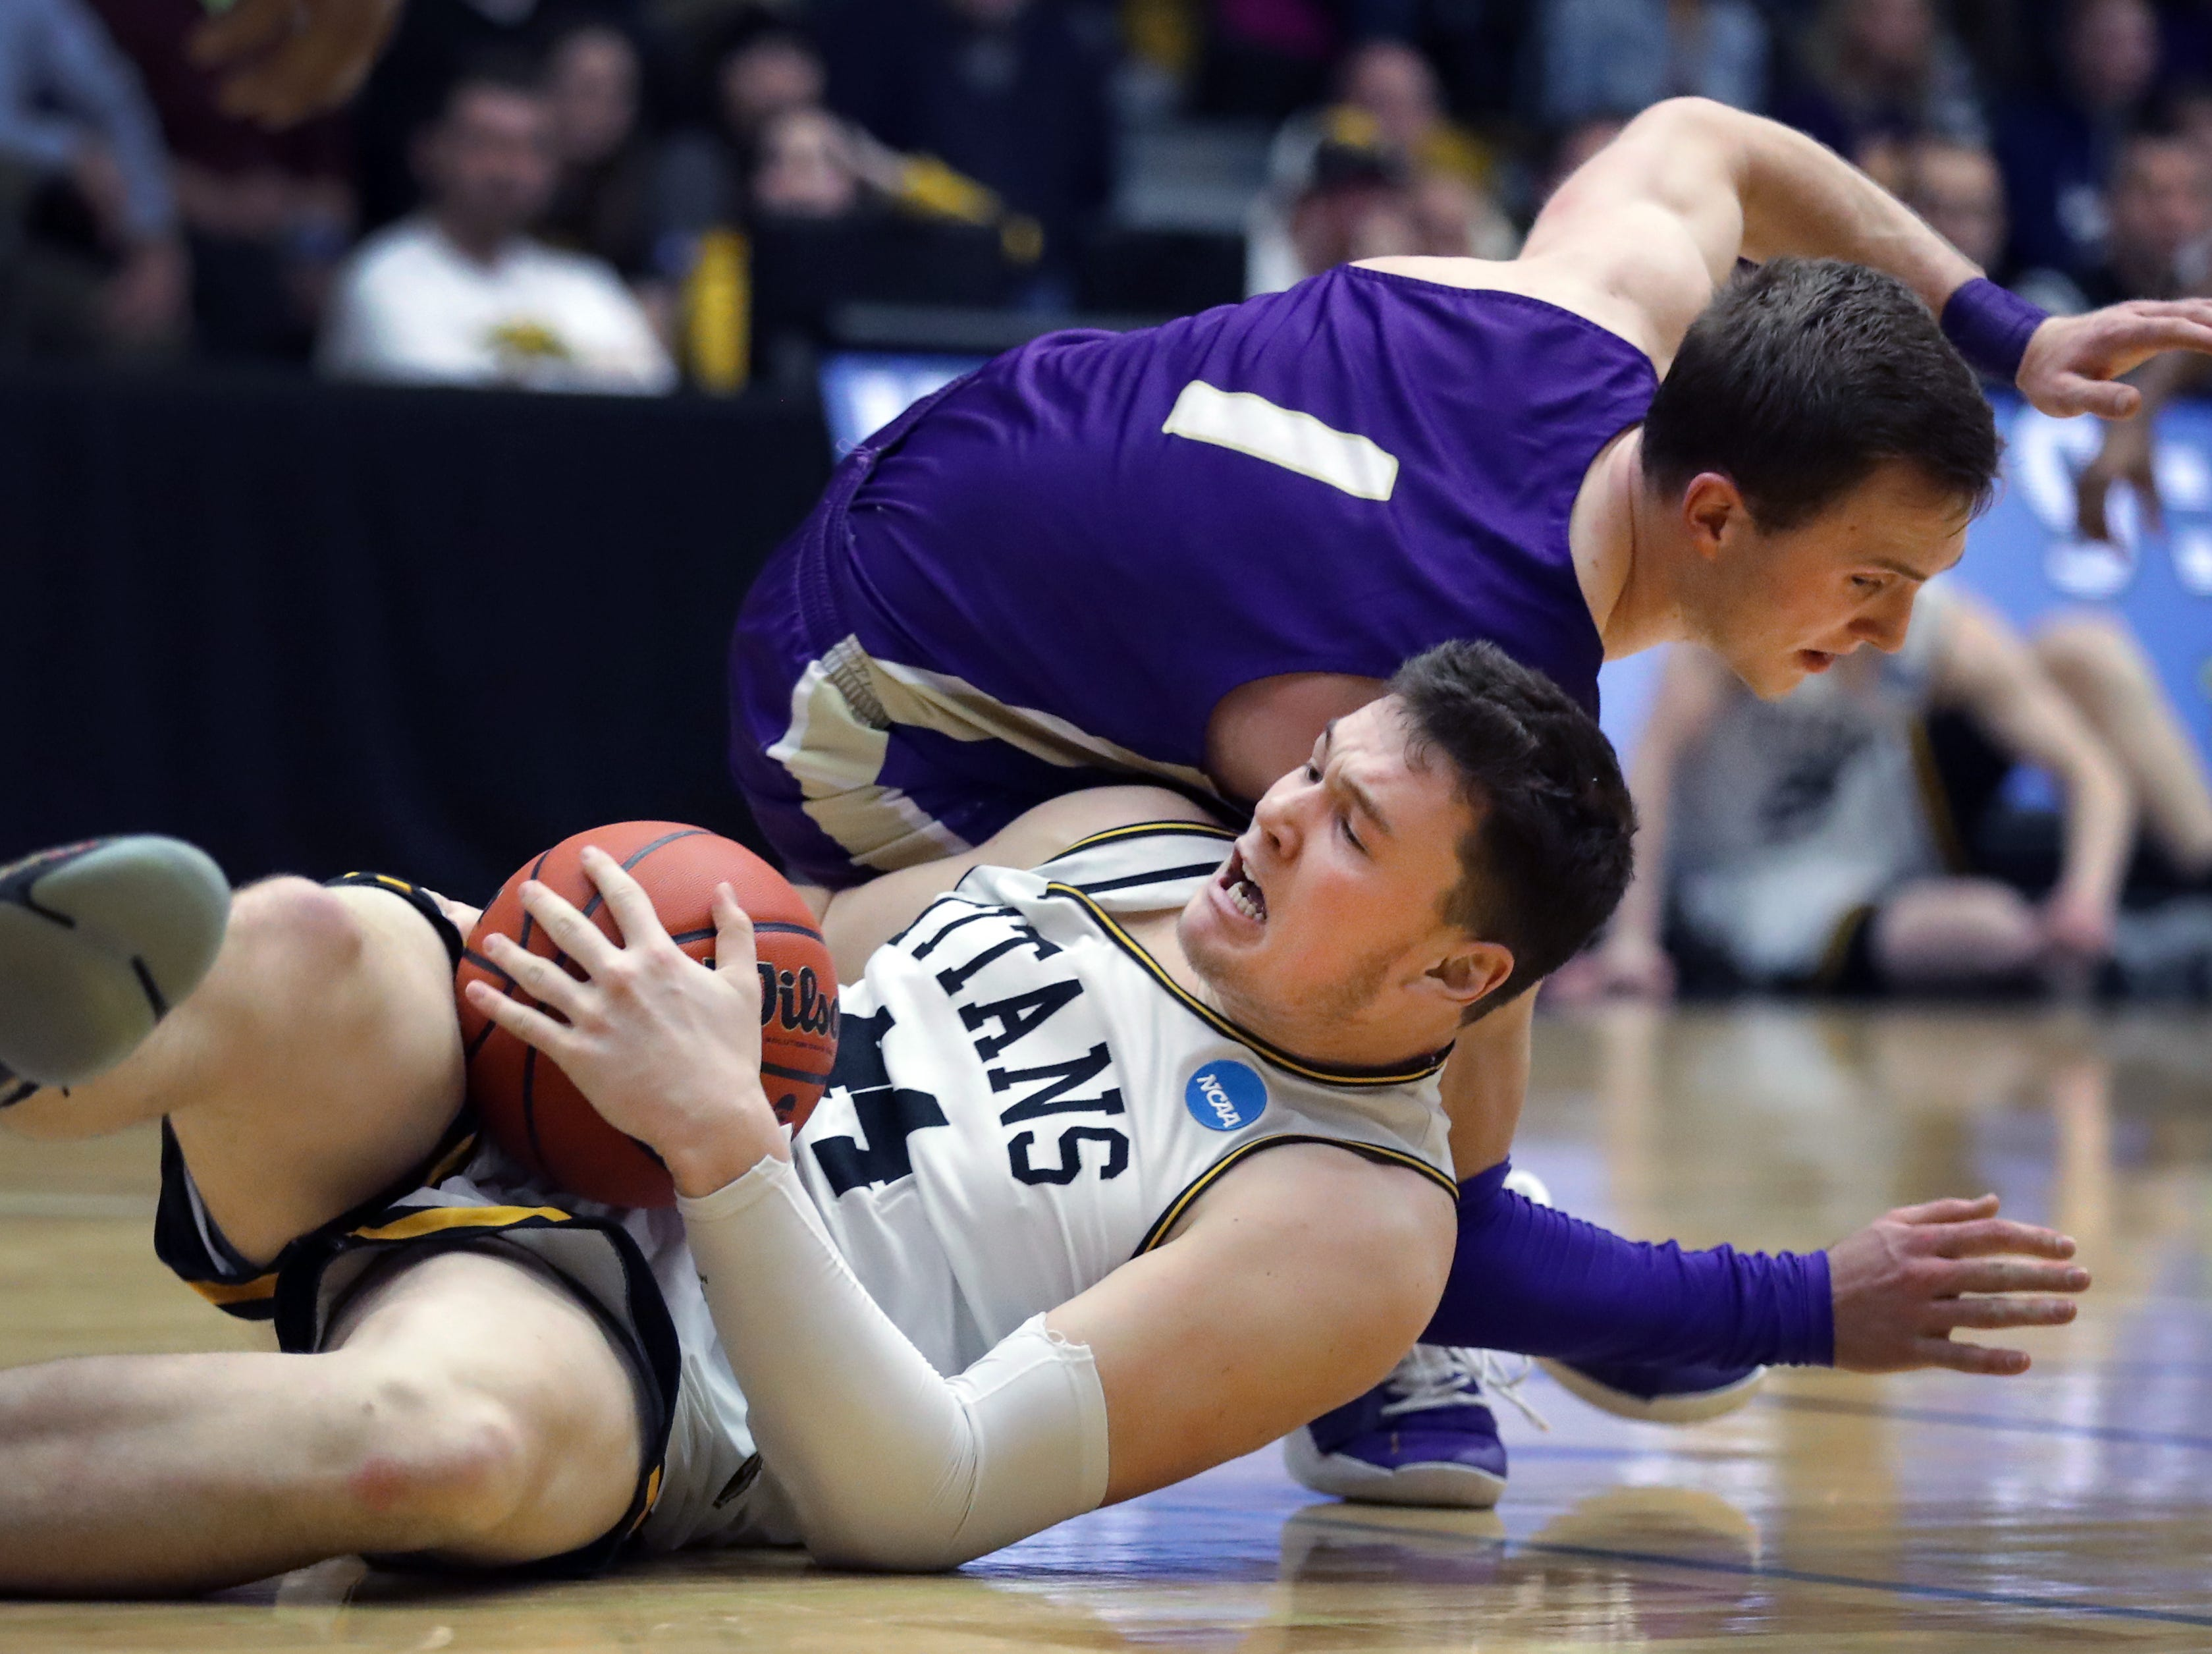 University of Wisconsin-Oshkosh's #44 Jack Flynn against Loras College-Iowa's #1 Ryan DiCanio during their NCAA DIII  Basketball Championship sectional game on Friday, March 8, 2019, at the Kolf Sports Center in Oshkosh, Wis. Oshkosh defeated Loras 86 to 75.Wm. Glasheen/USA TODAY NETWORK-Wisconsin.